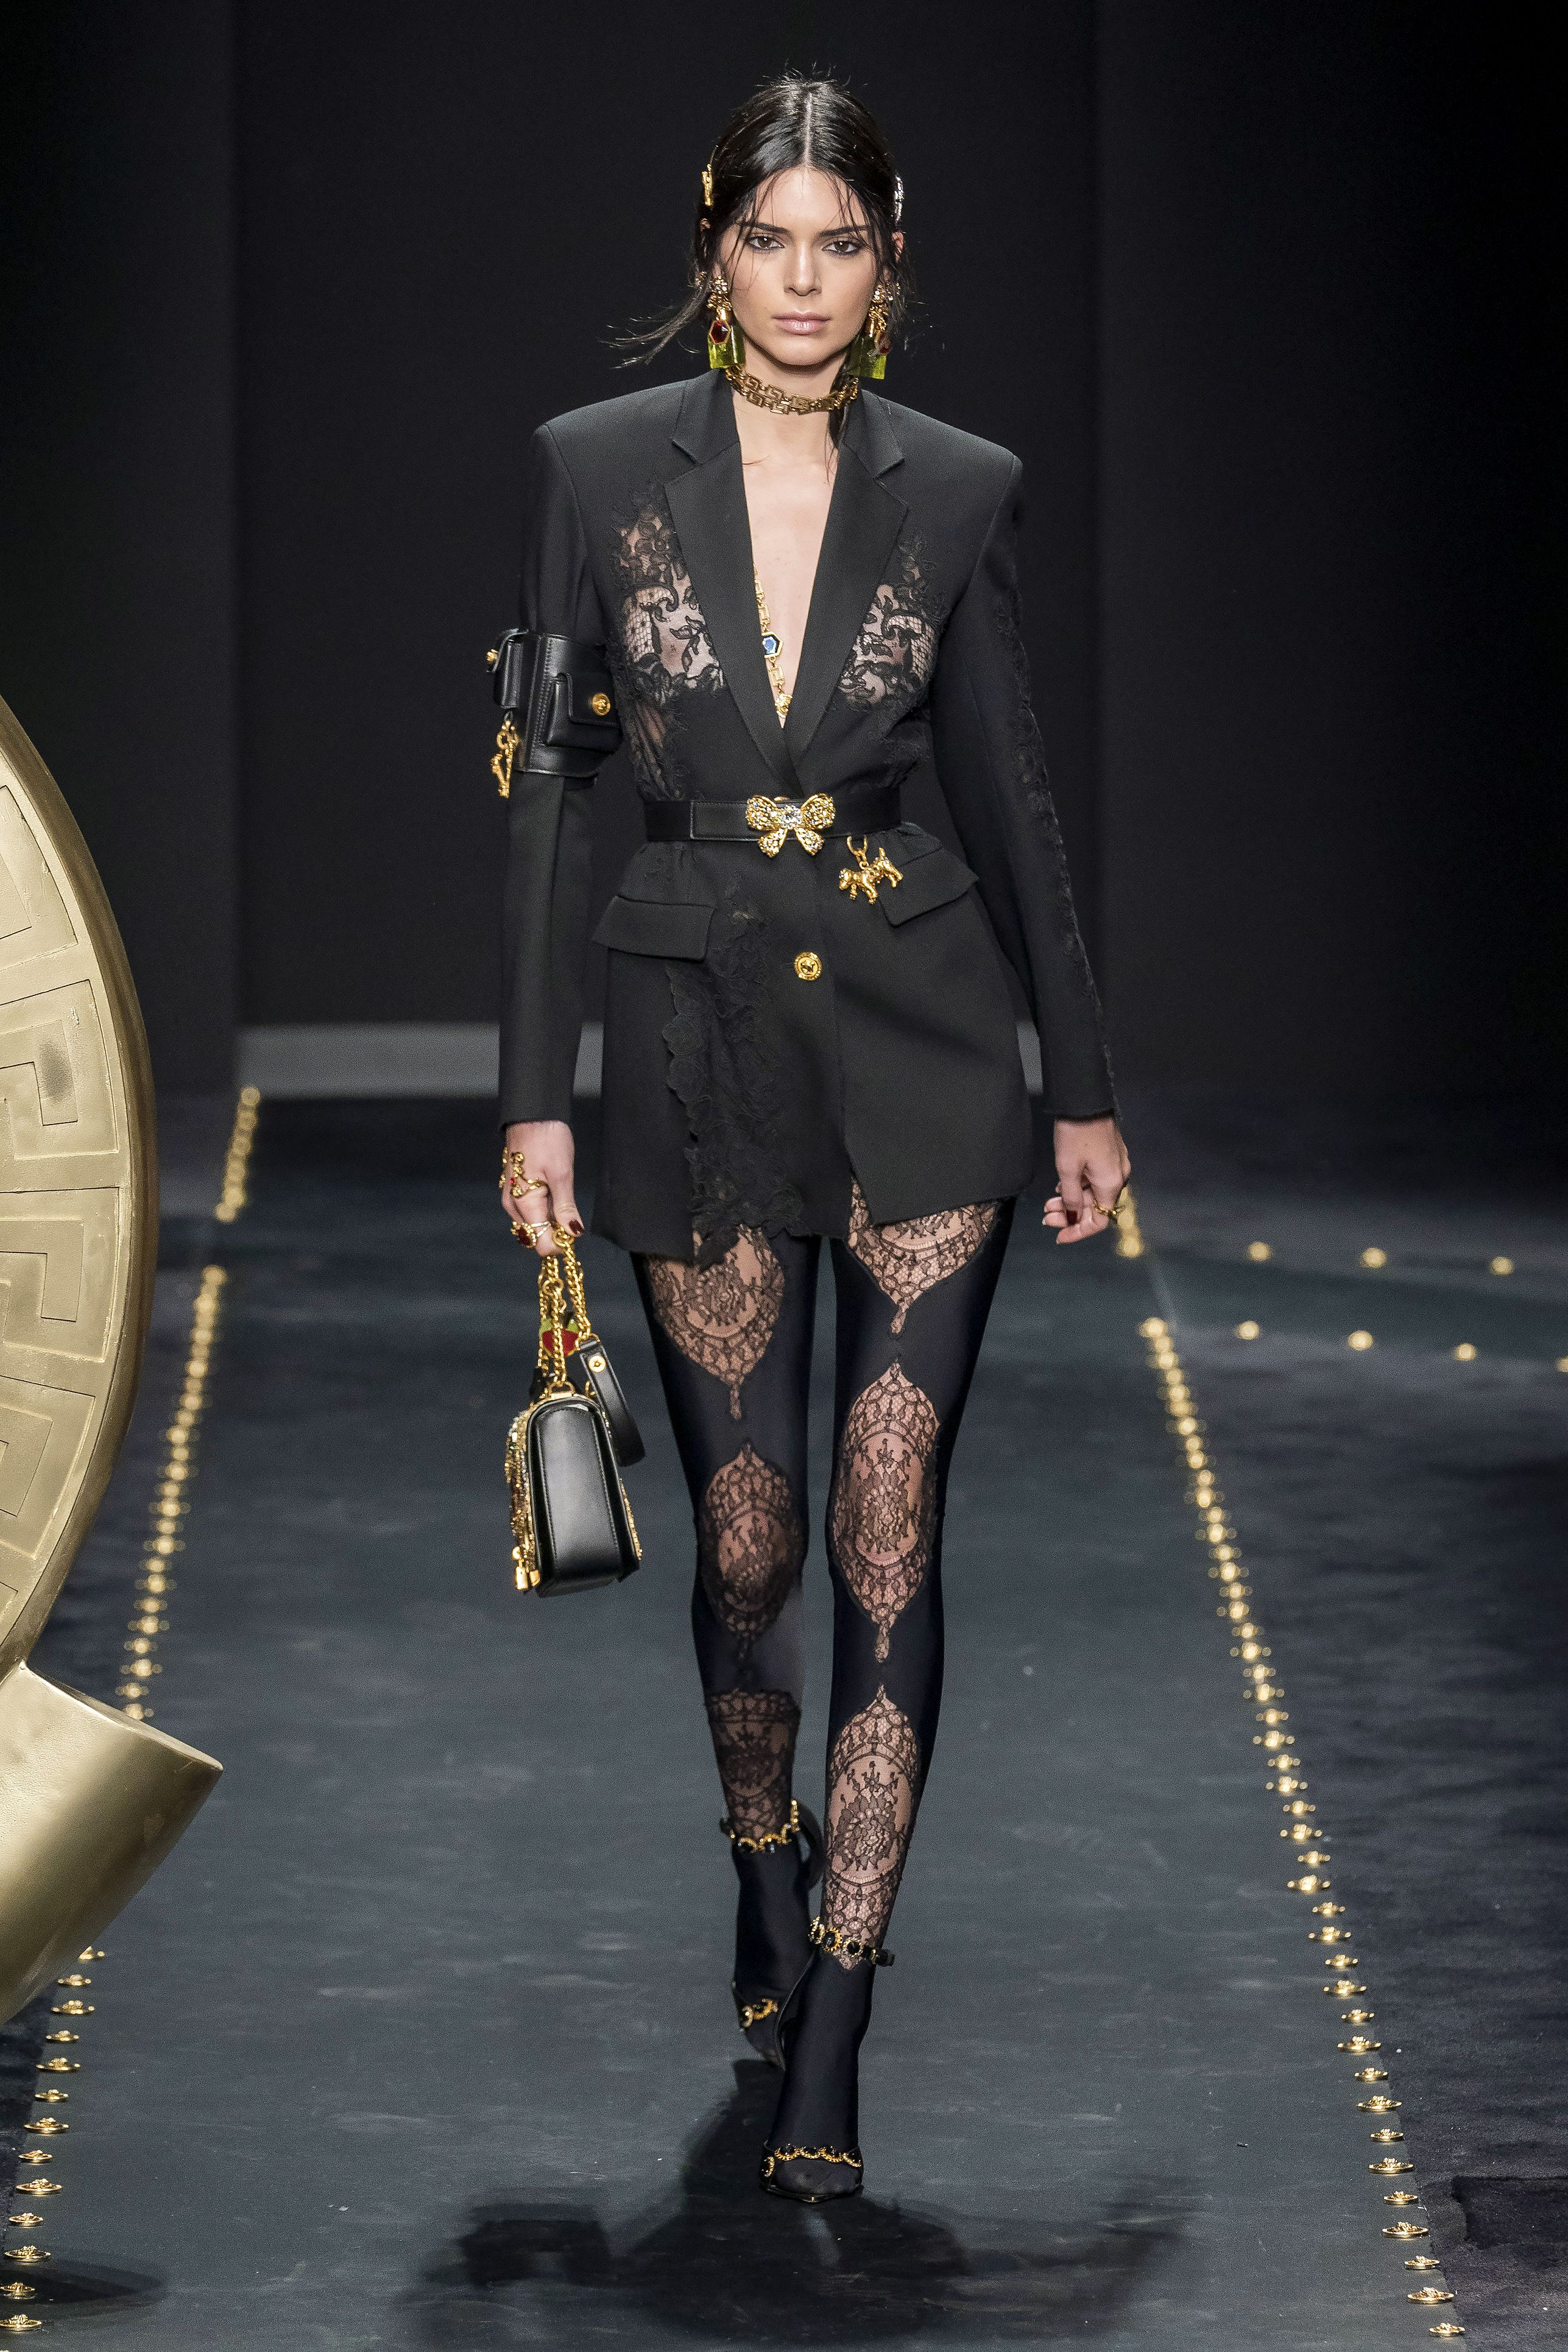 Kendall Jenner AW19 Versace